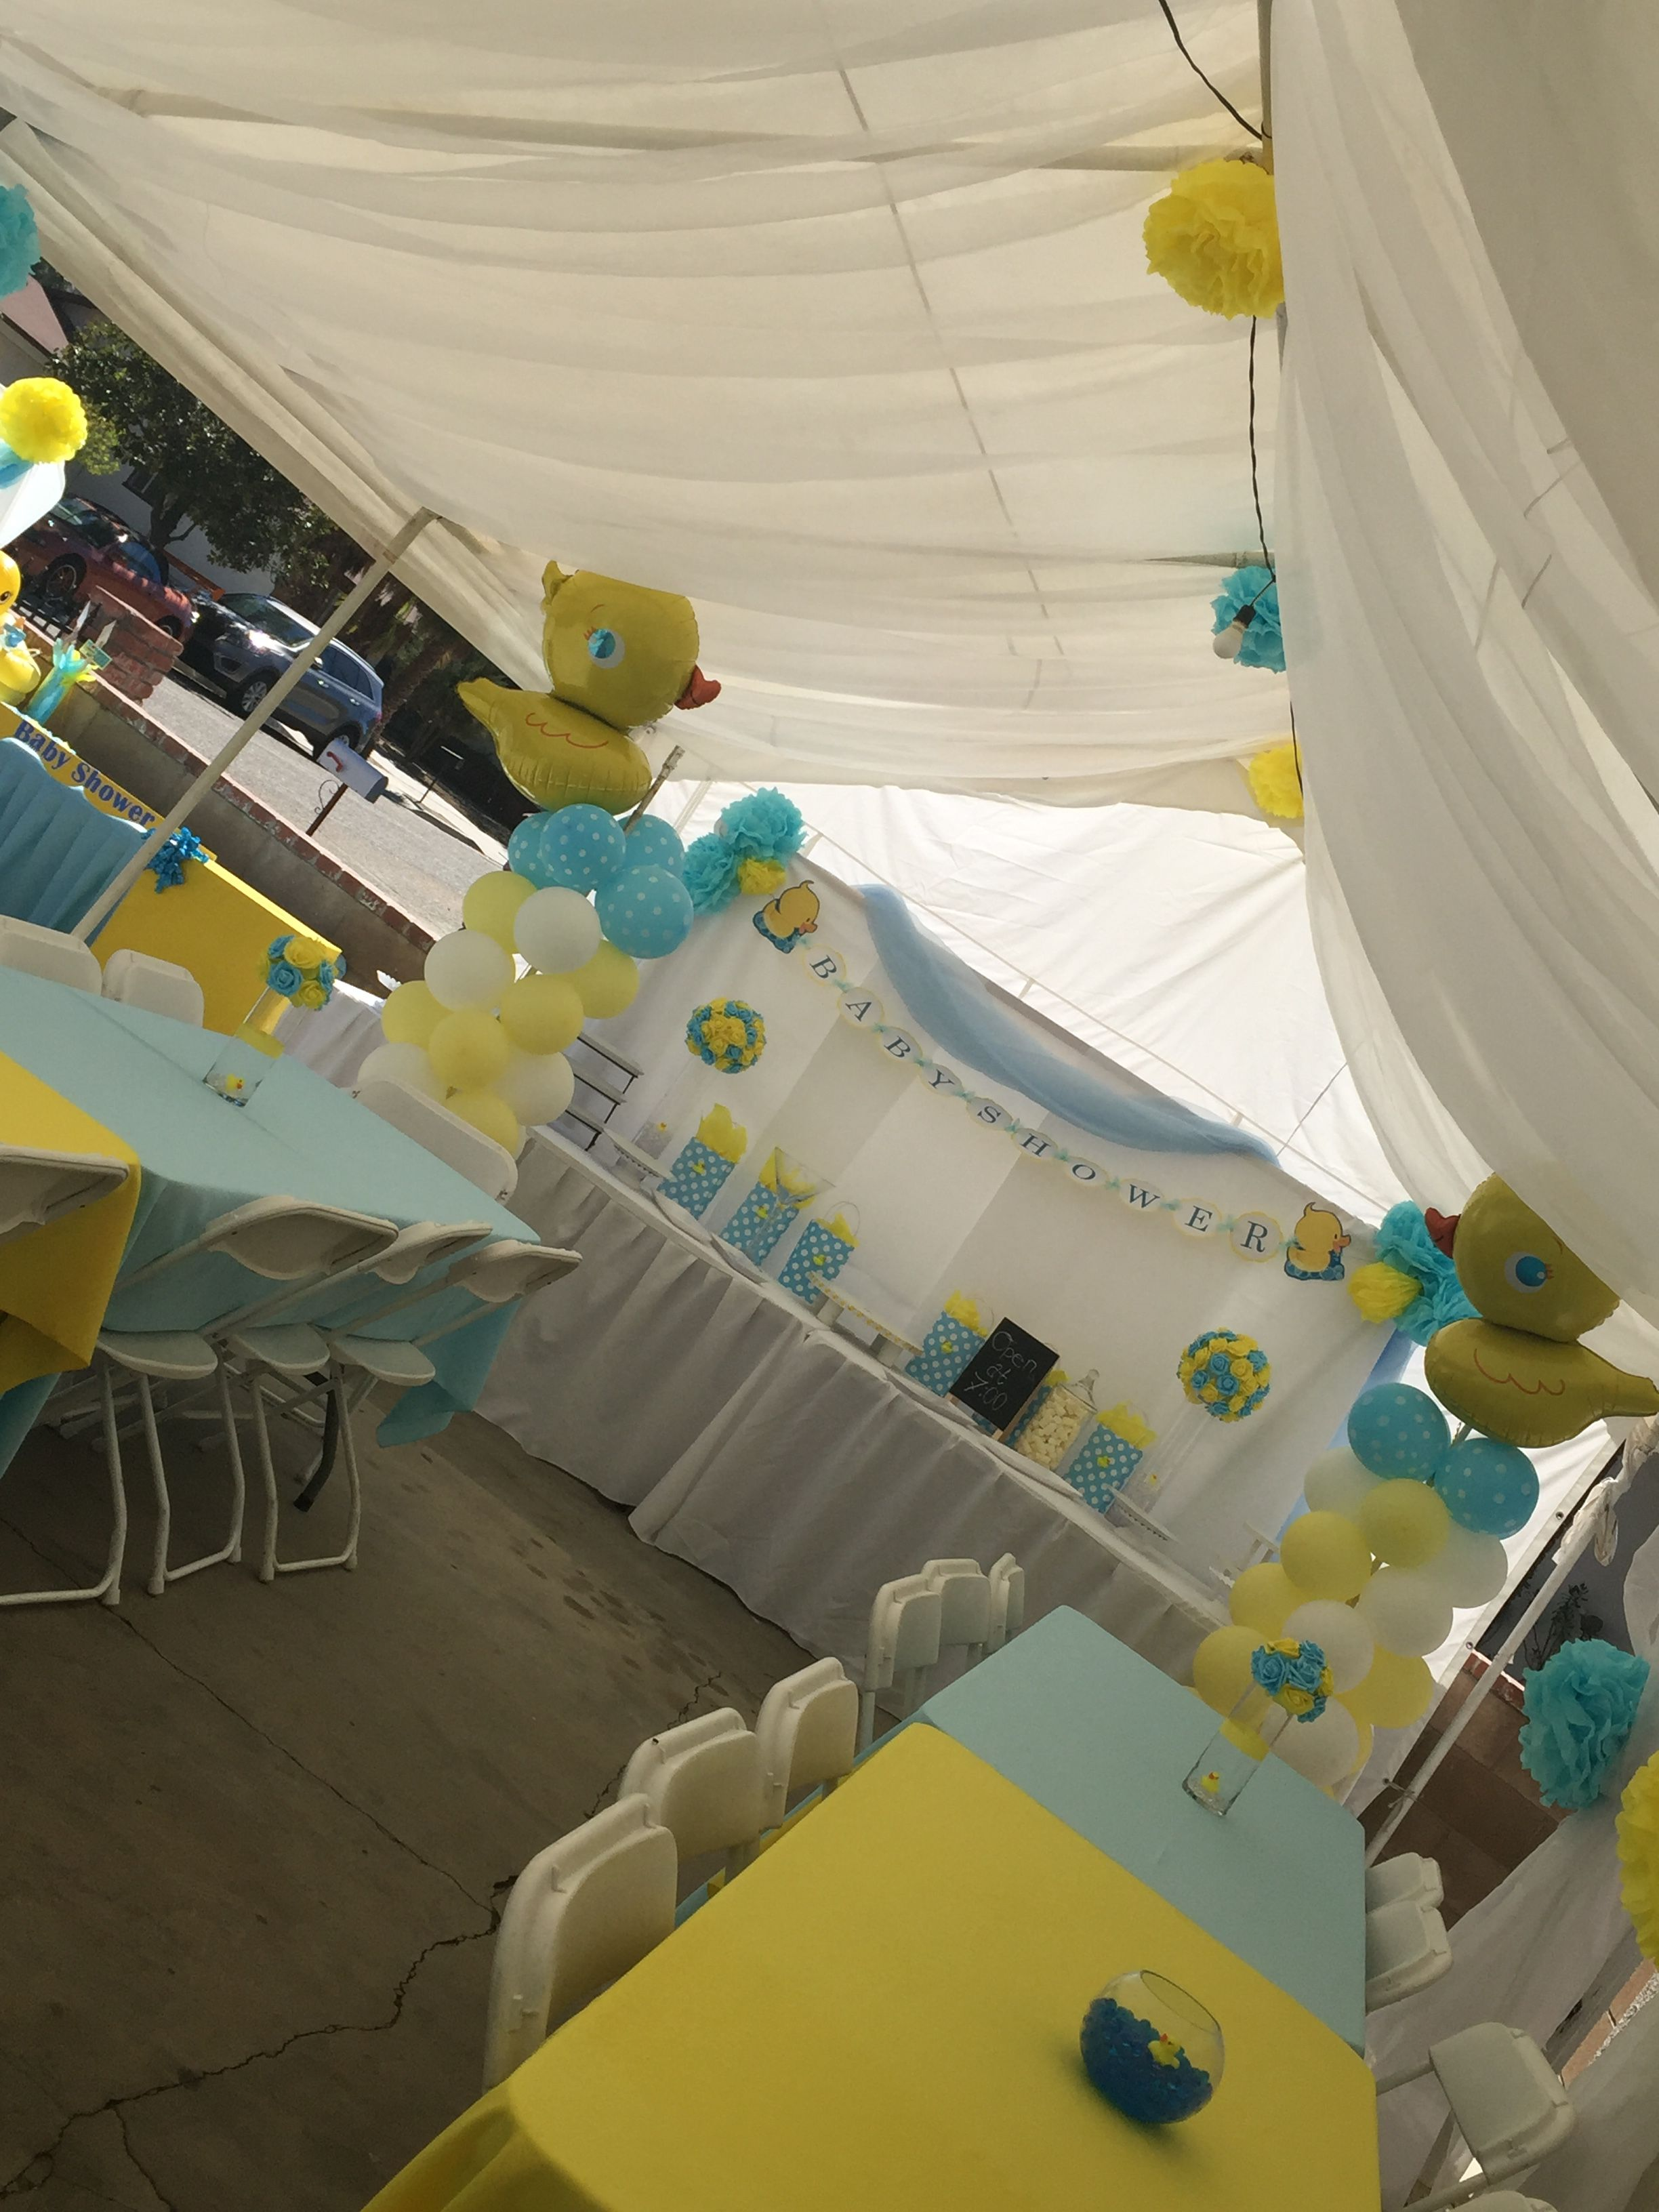 pin by anabelen de orta on rubber duck baby shower pinterest party themes grandma s boy balloon backdrop balloons baby shower rubber duck shower ideas gender reveal ducks